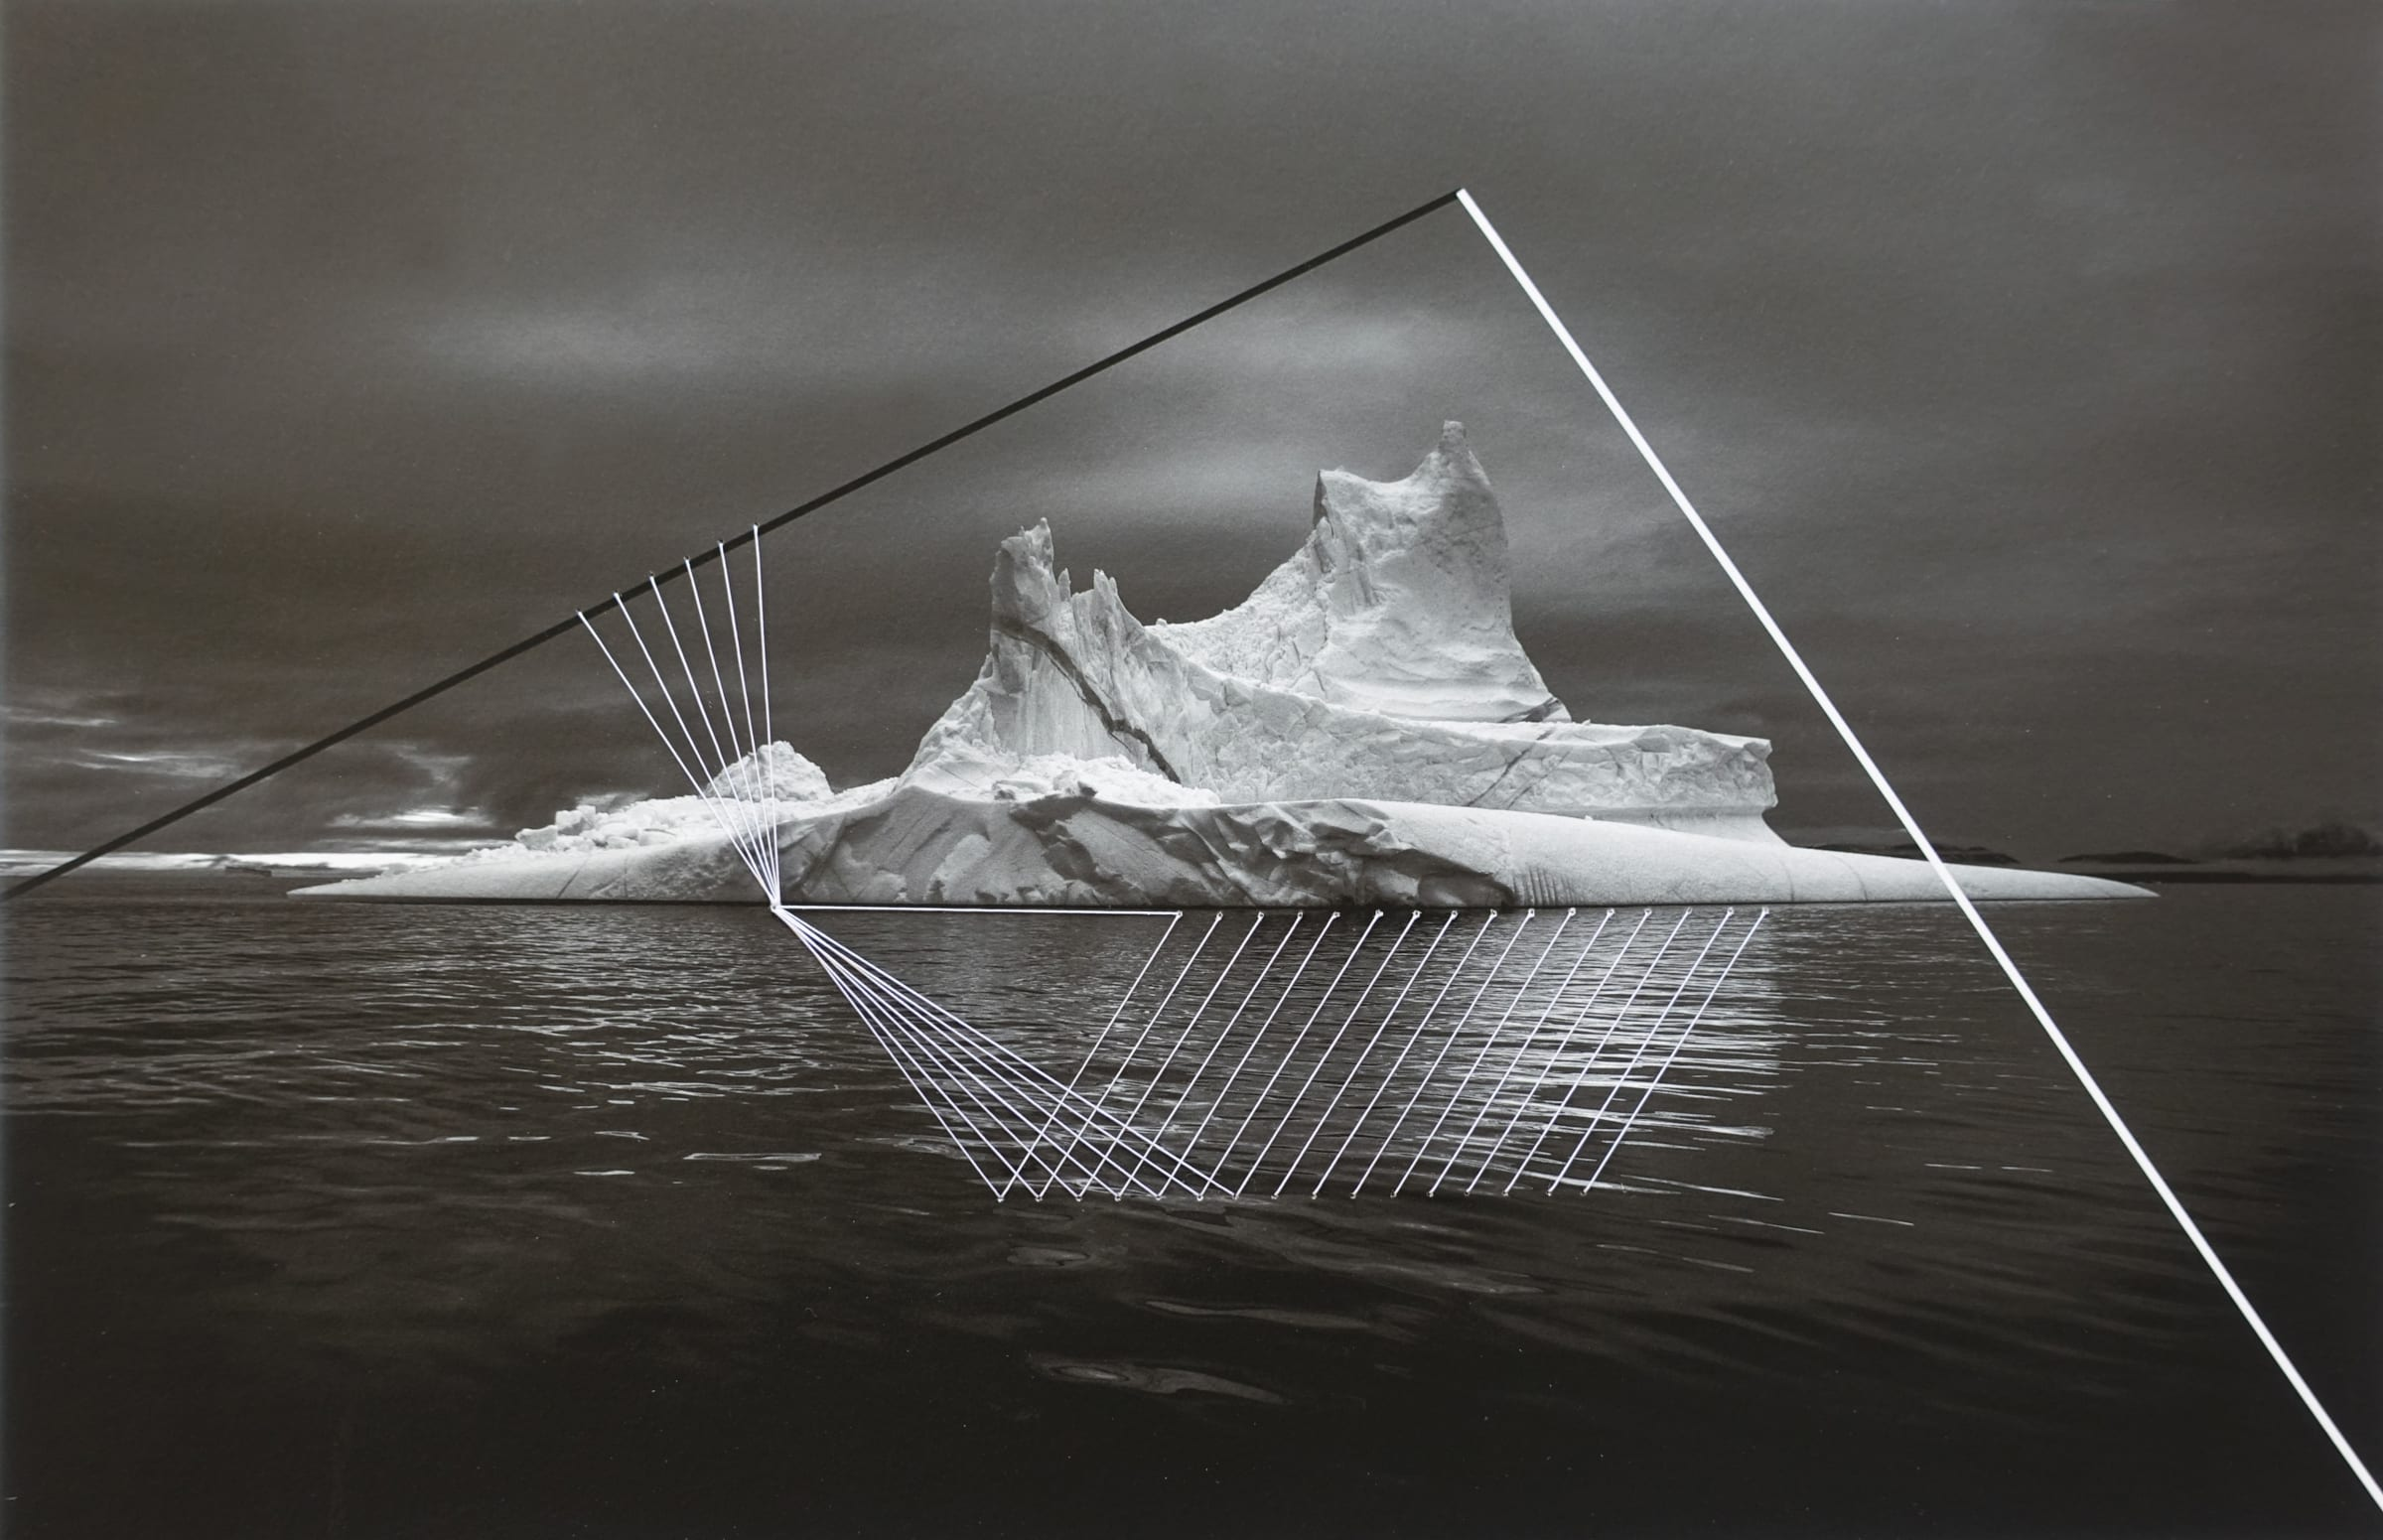 """<span class=""""link fancybox-details-link""""><a href=""""/artists/52-adriene-hughes/works/893-adriene-hughes-threaded-iceberg-bw-no.-4-2019/"""">View Detail Page</a></span><div class=""""artist""""><strong>Adriene Hughes</strong></div> <div class=""""title""""><em>Threaded Iceberg BW No. 4</em>, 2019</div> <div class=""""medium"""">Archival Pigment Print on Cotton Rag with Cotton Quilting Thread<br /> Print only<br /> Unique</div> <div class=""""dimensions"""">20.3 x 30.5 cm<br /> 8 x 12 in</div><div class=""""copyright_line"""">Copyright Adriene Hughes<br></div>"""